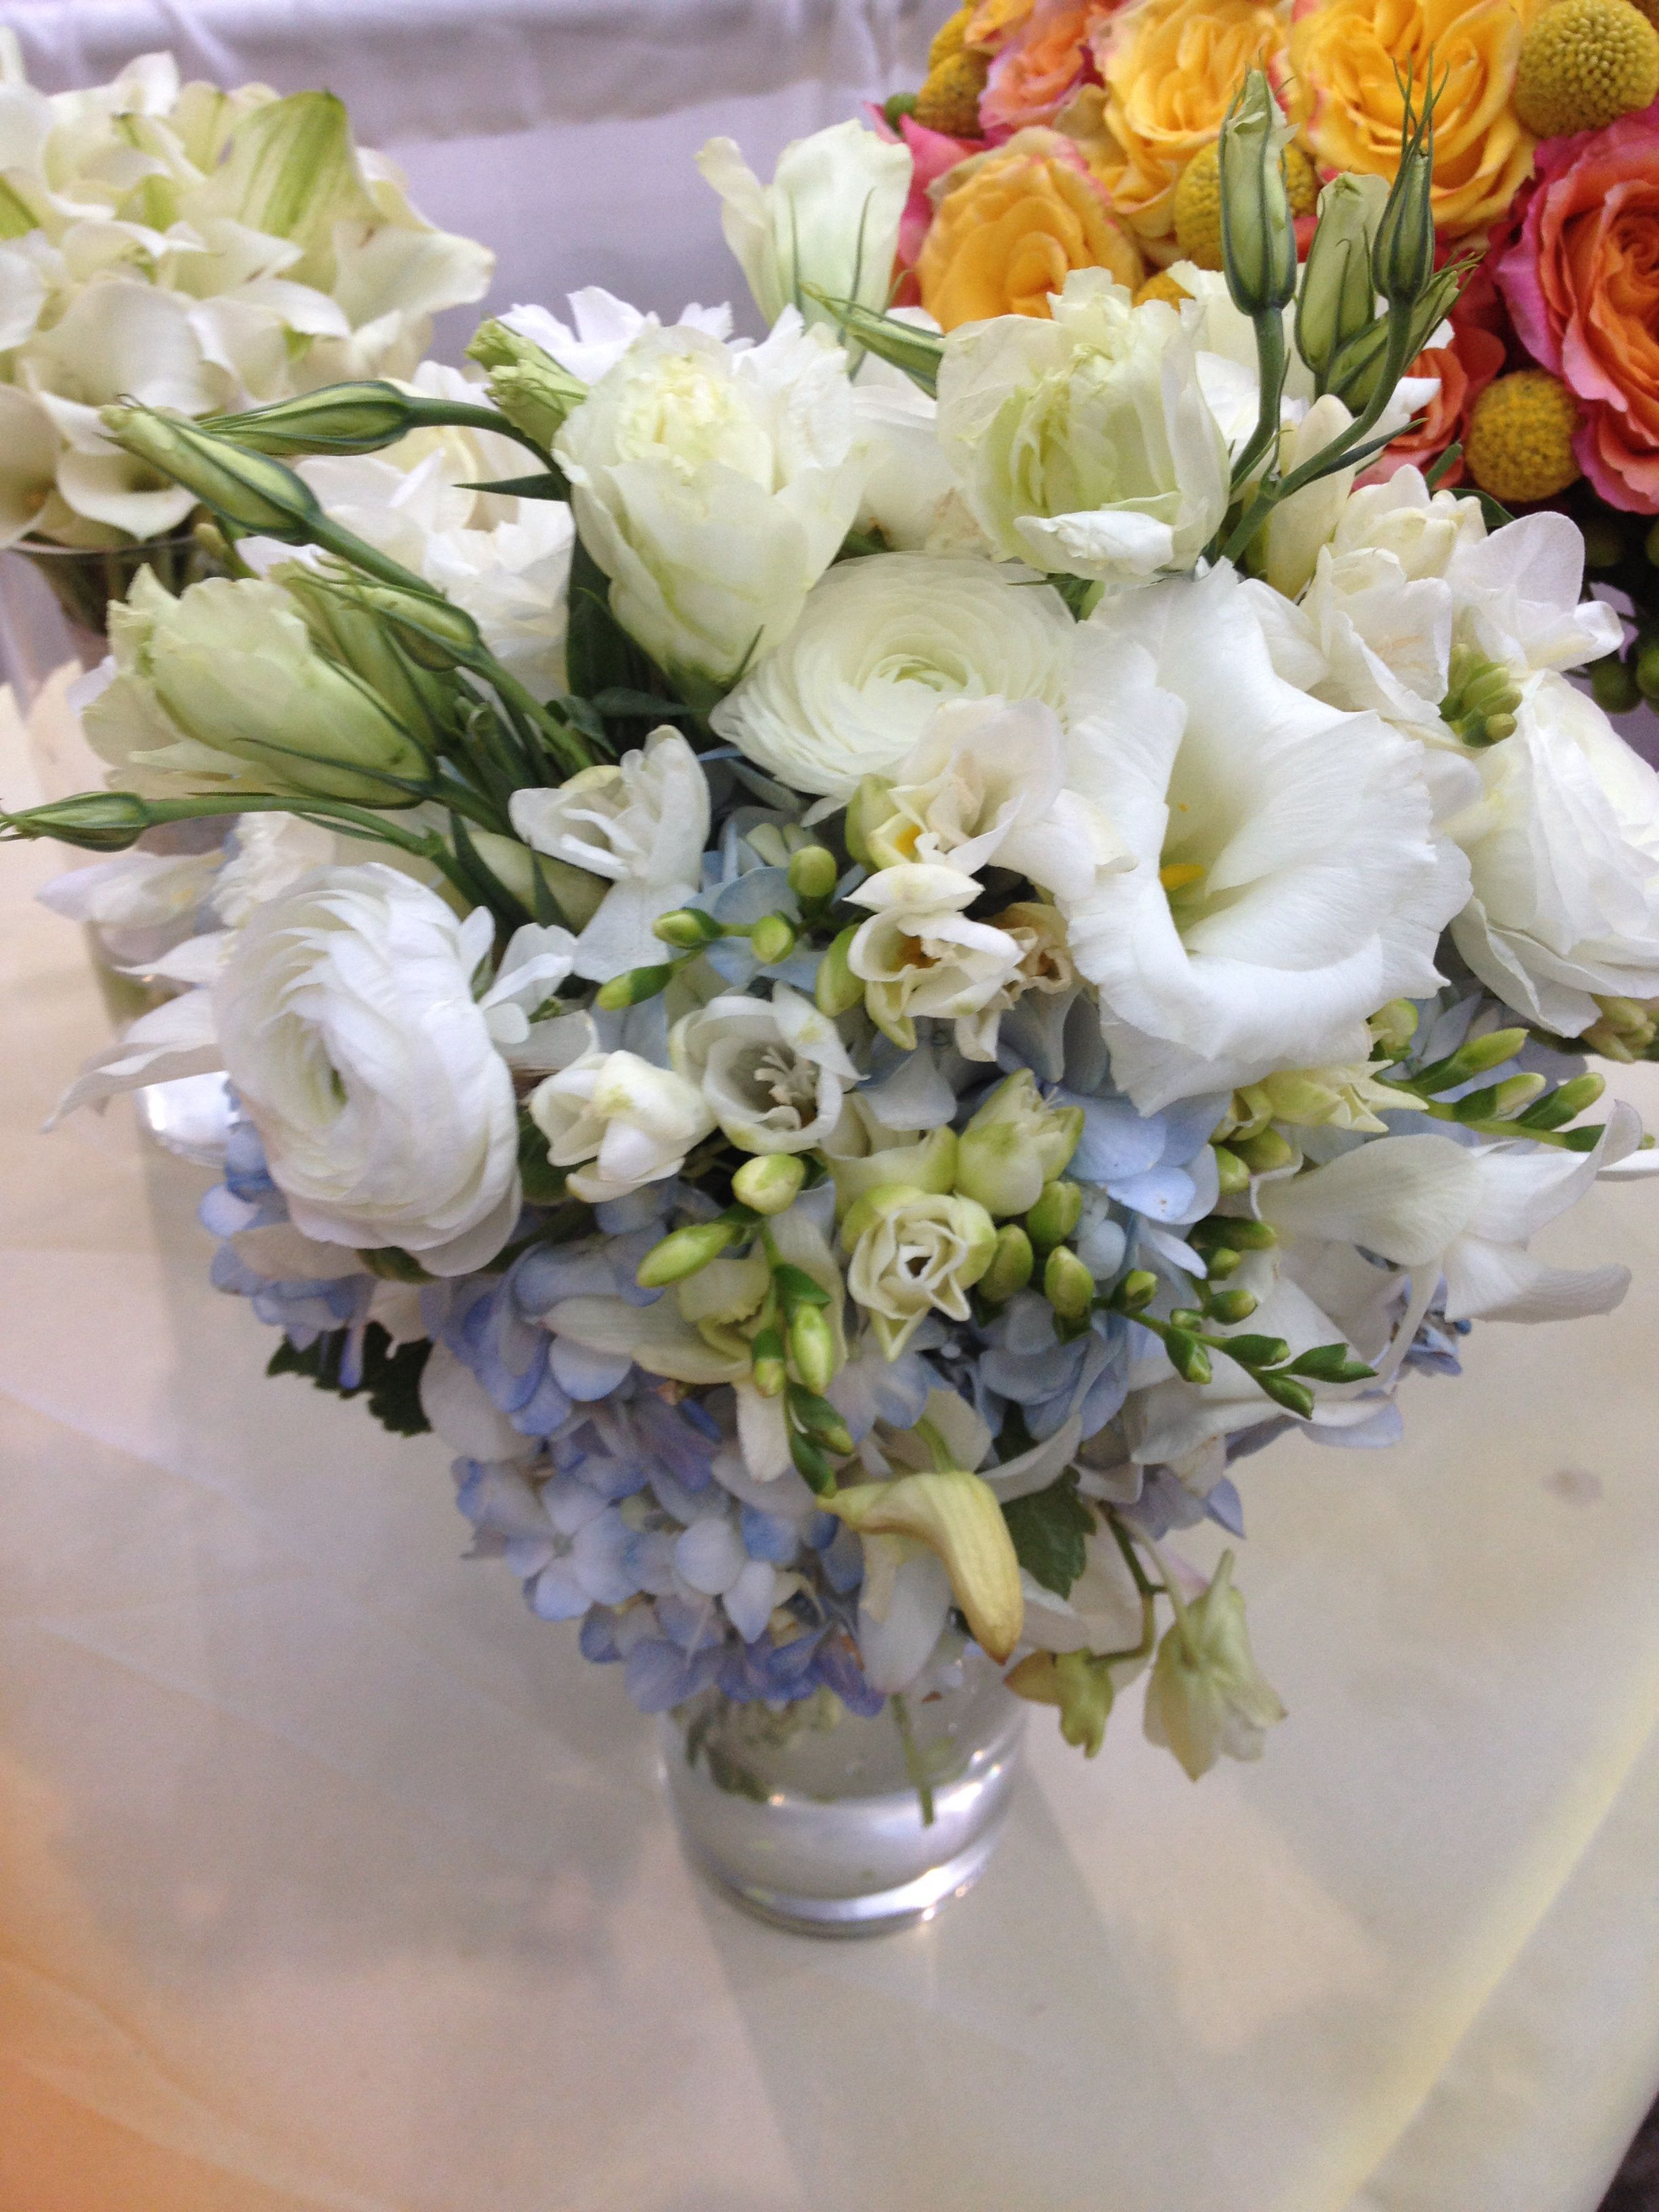 Blue and white bouquet wedding flowers pinterest bouquets blue and white bouquet izmirmasajfo Choice Image